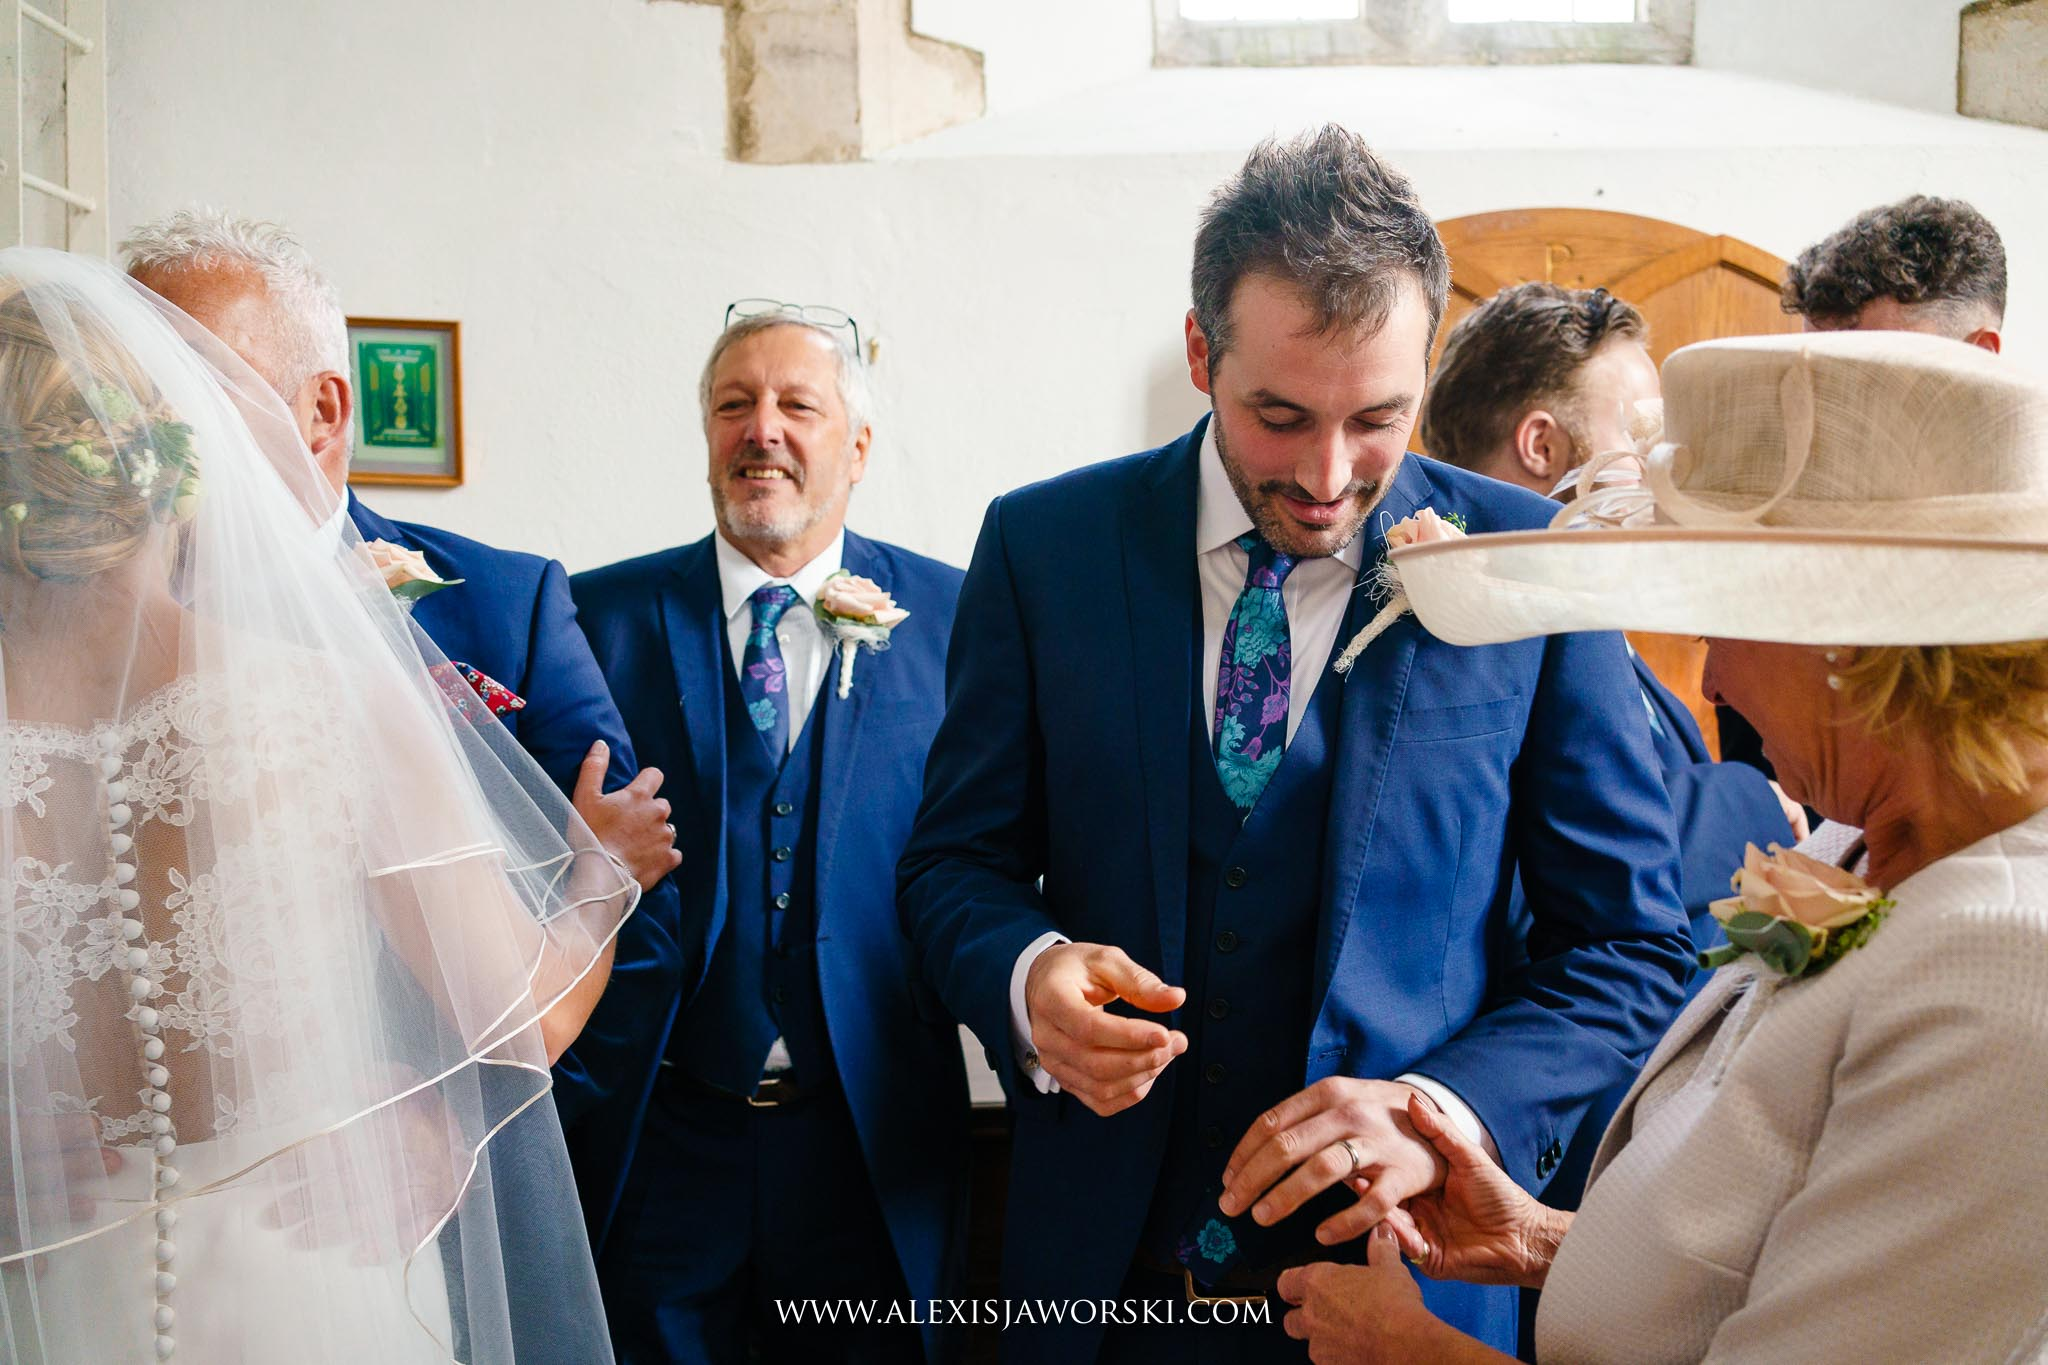 The groom showing the wedding ring